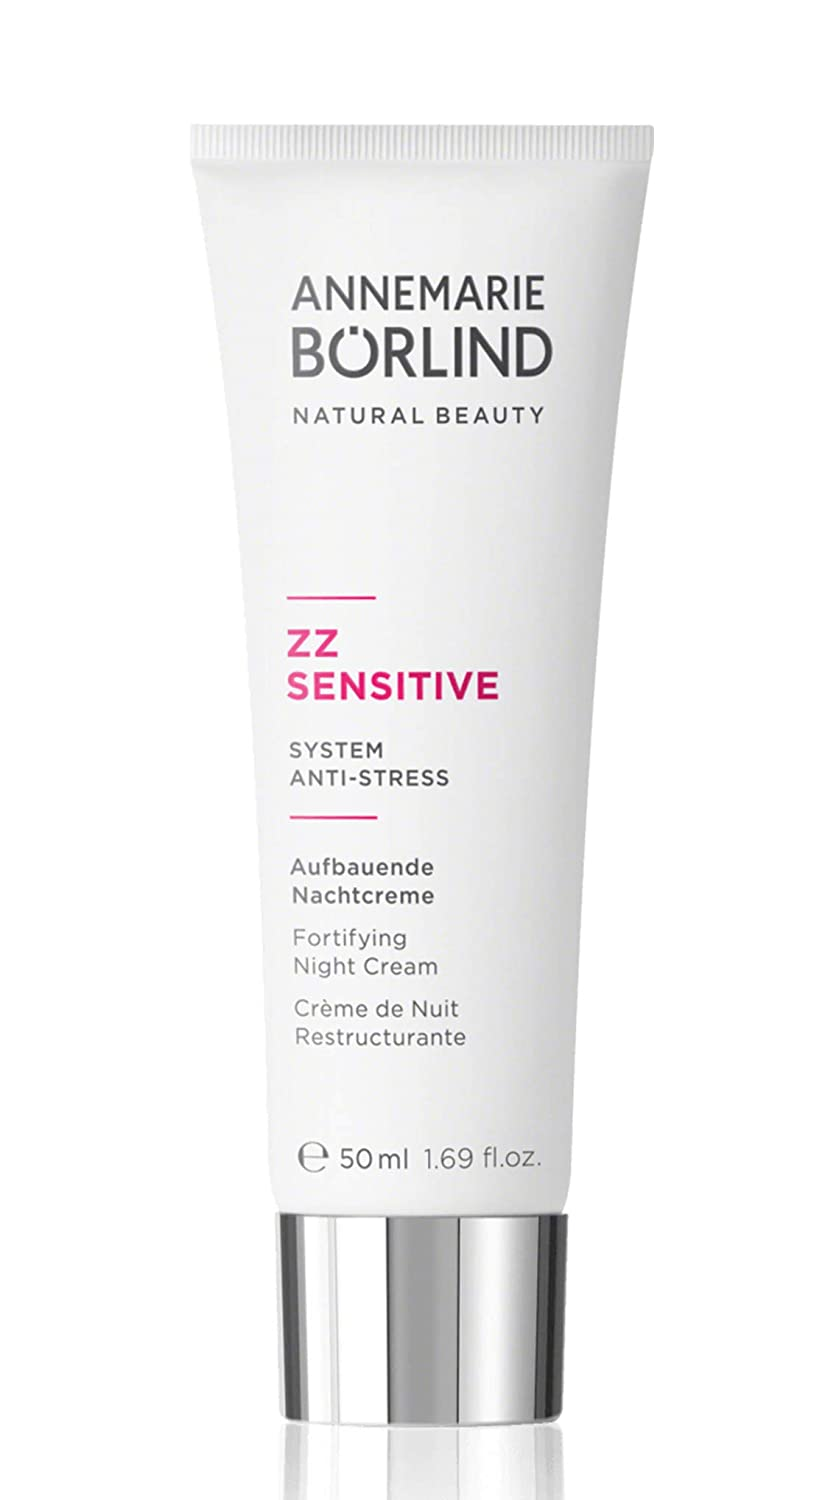 ANNEMARIE BÖRLIND – ZZ SENSITIVE Fortifying Night Cream – Sustainably Sourced Natural Face Cream for Overnight Regeneration and Visibly Smoother Facial Skin – Step 4 of 5 - 1.69 Oz.